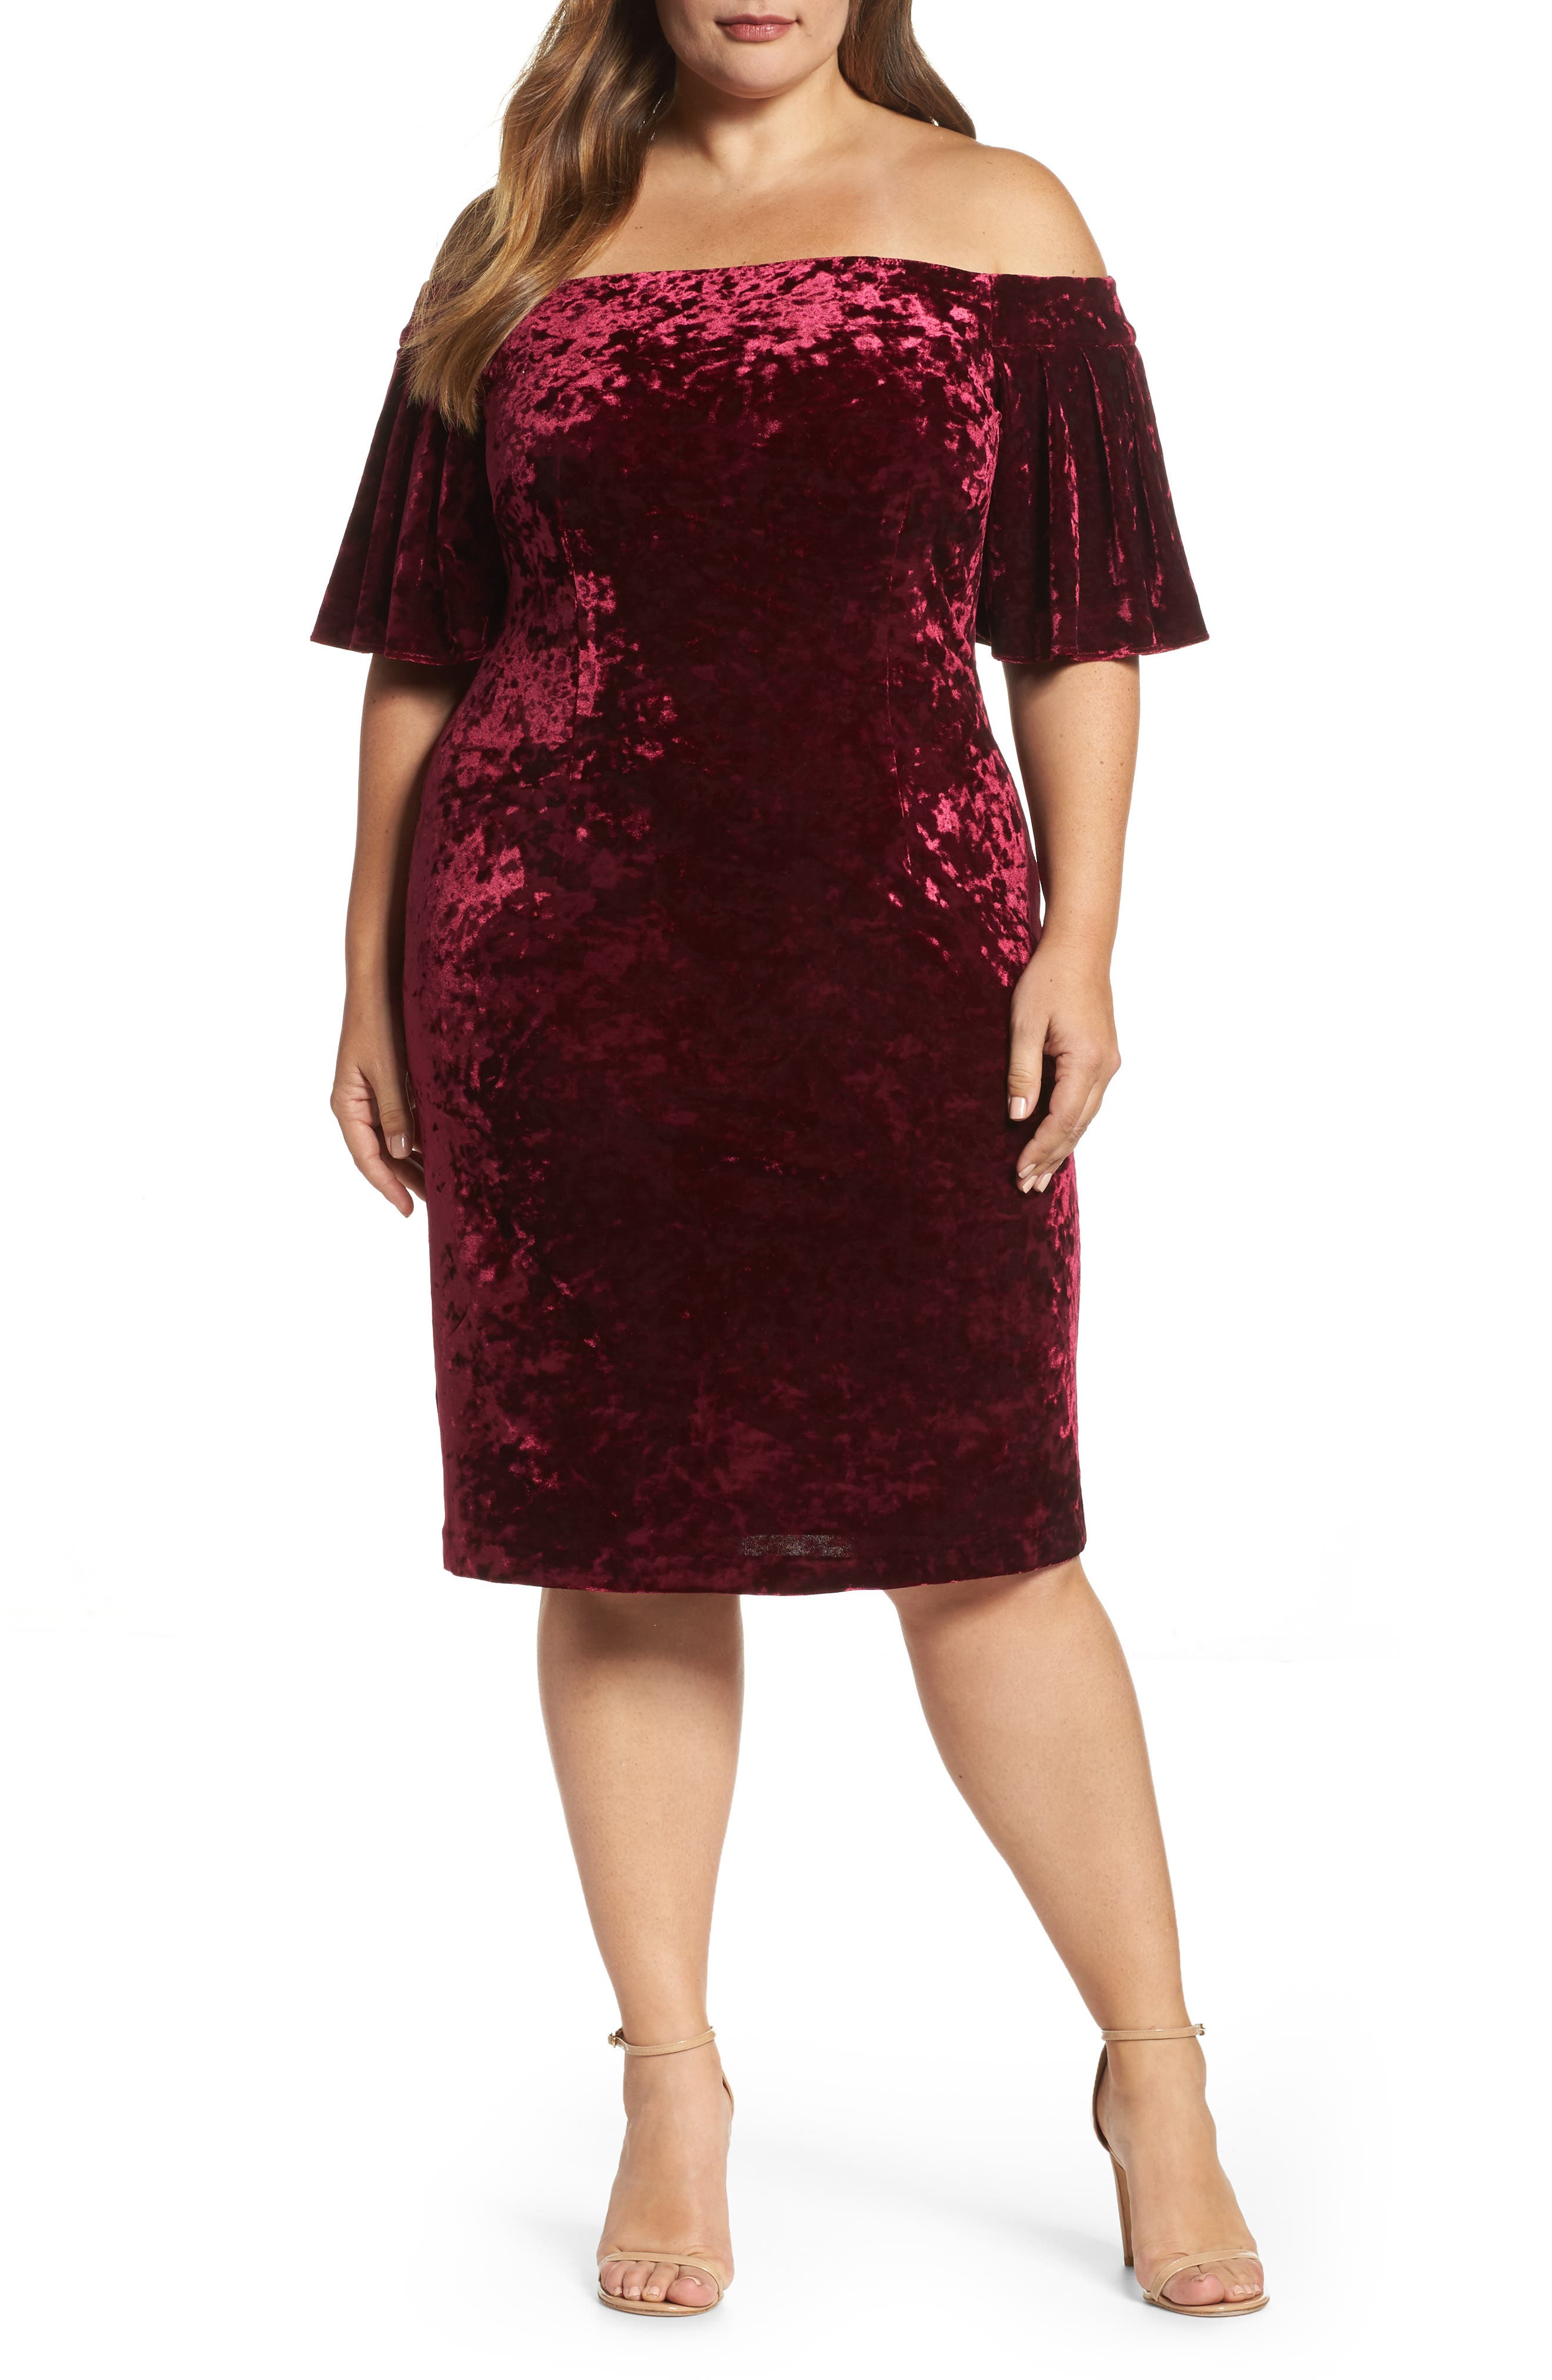 Alternate Image 1 Selected - Eliza J Off the Shoulder Velvet Sheath Dress (Plus Size)